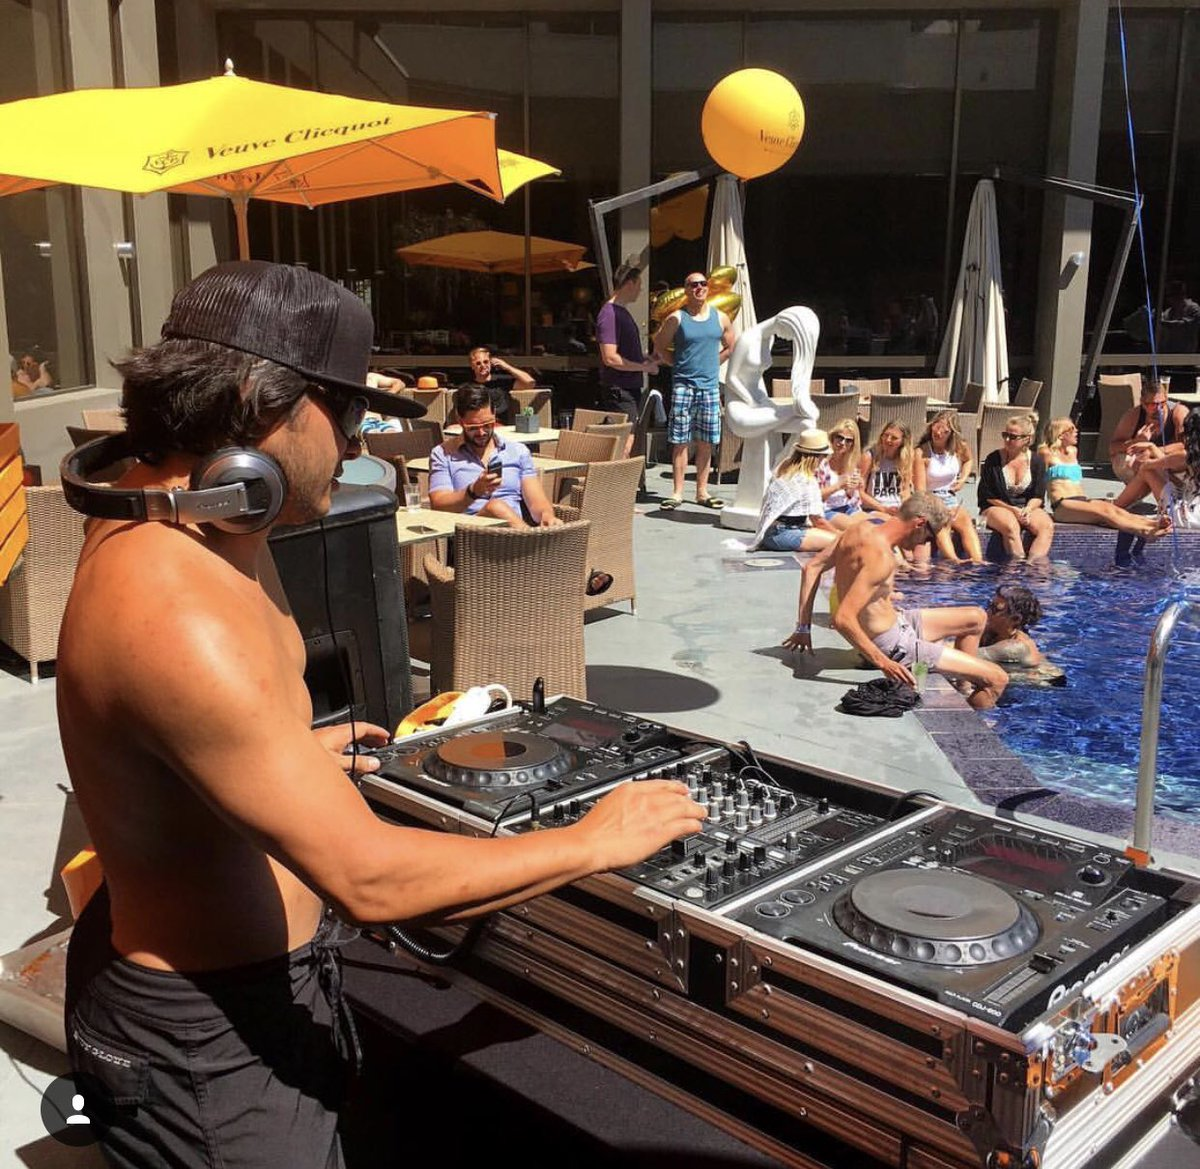 "Hotel Arts ar Twitter: ""Who's ready for a day spent on our Poolside Patio  eating and drinking all the deliciousness from our new weekend Poolside  Patio menu? We have DJ Cary Chang"